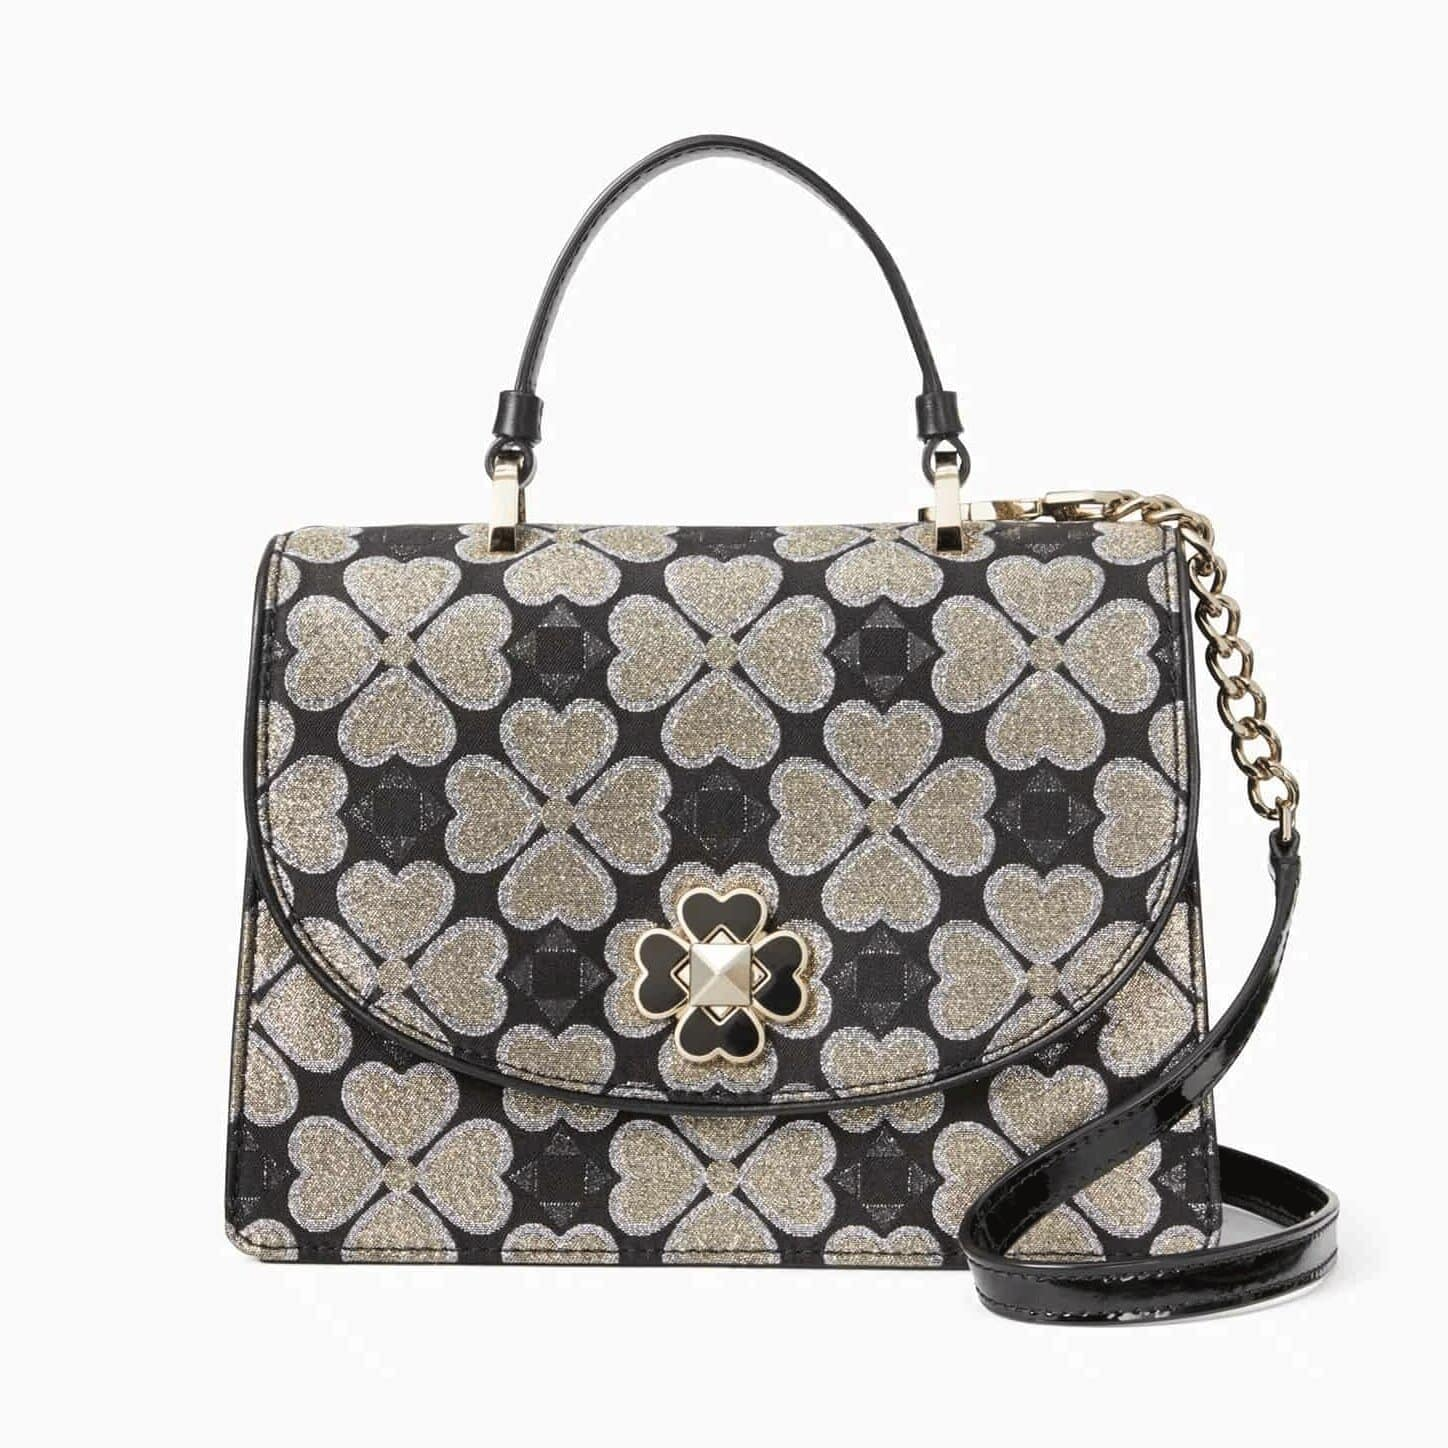 Kate Spade Odette Jacquard Small Top Handle Satchel